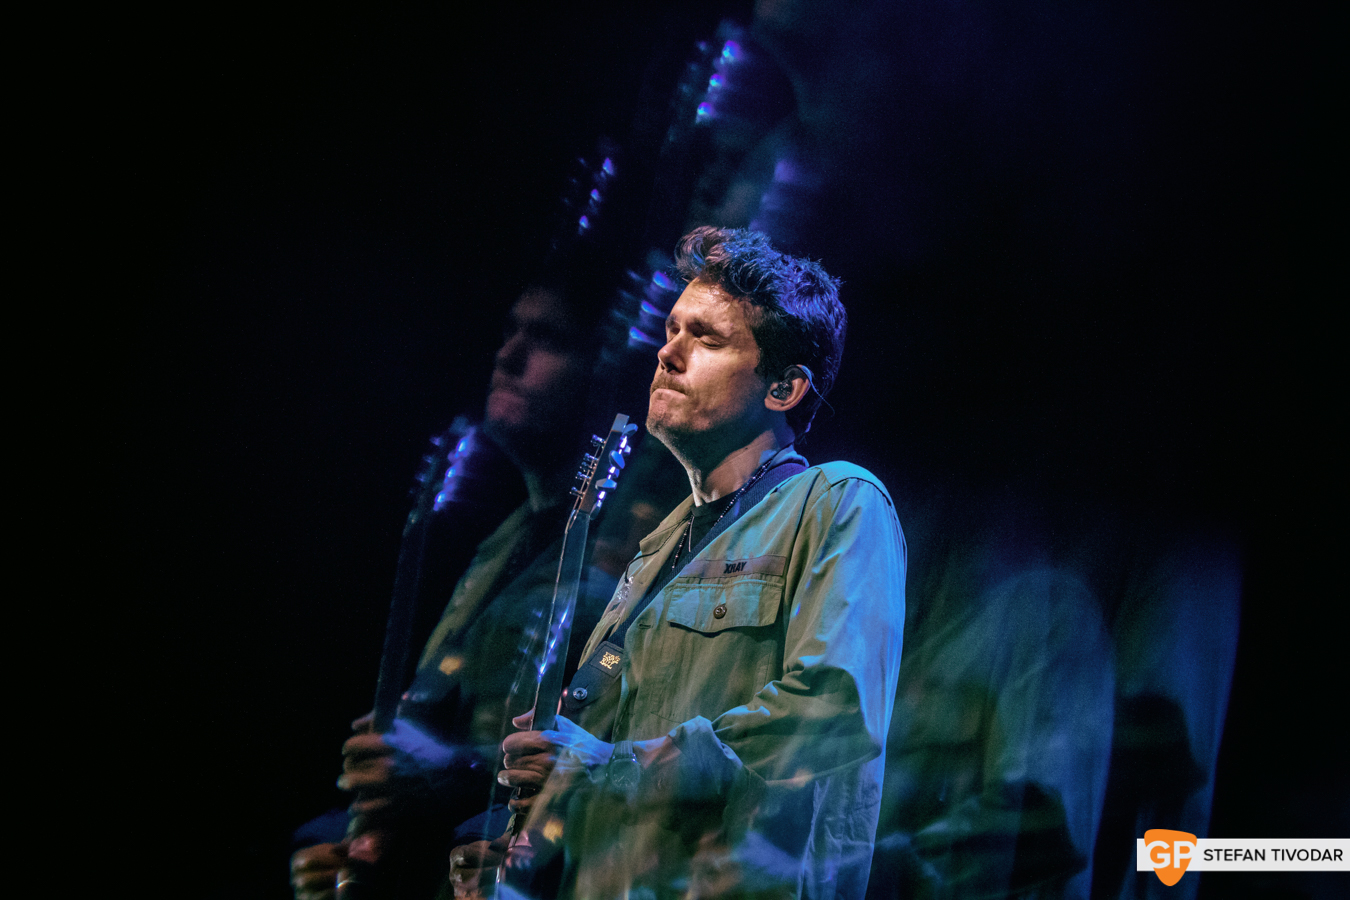 John Mayer 3 Arena October 2019 Tivodar 6